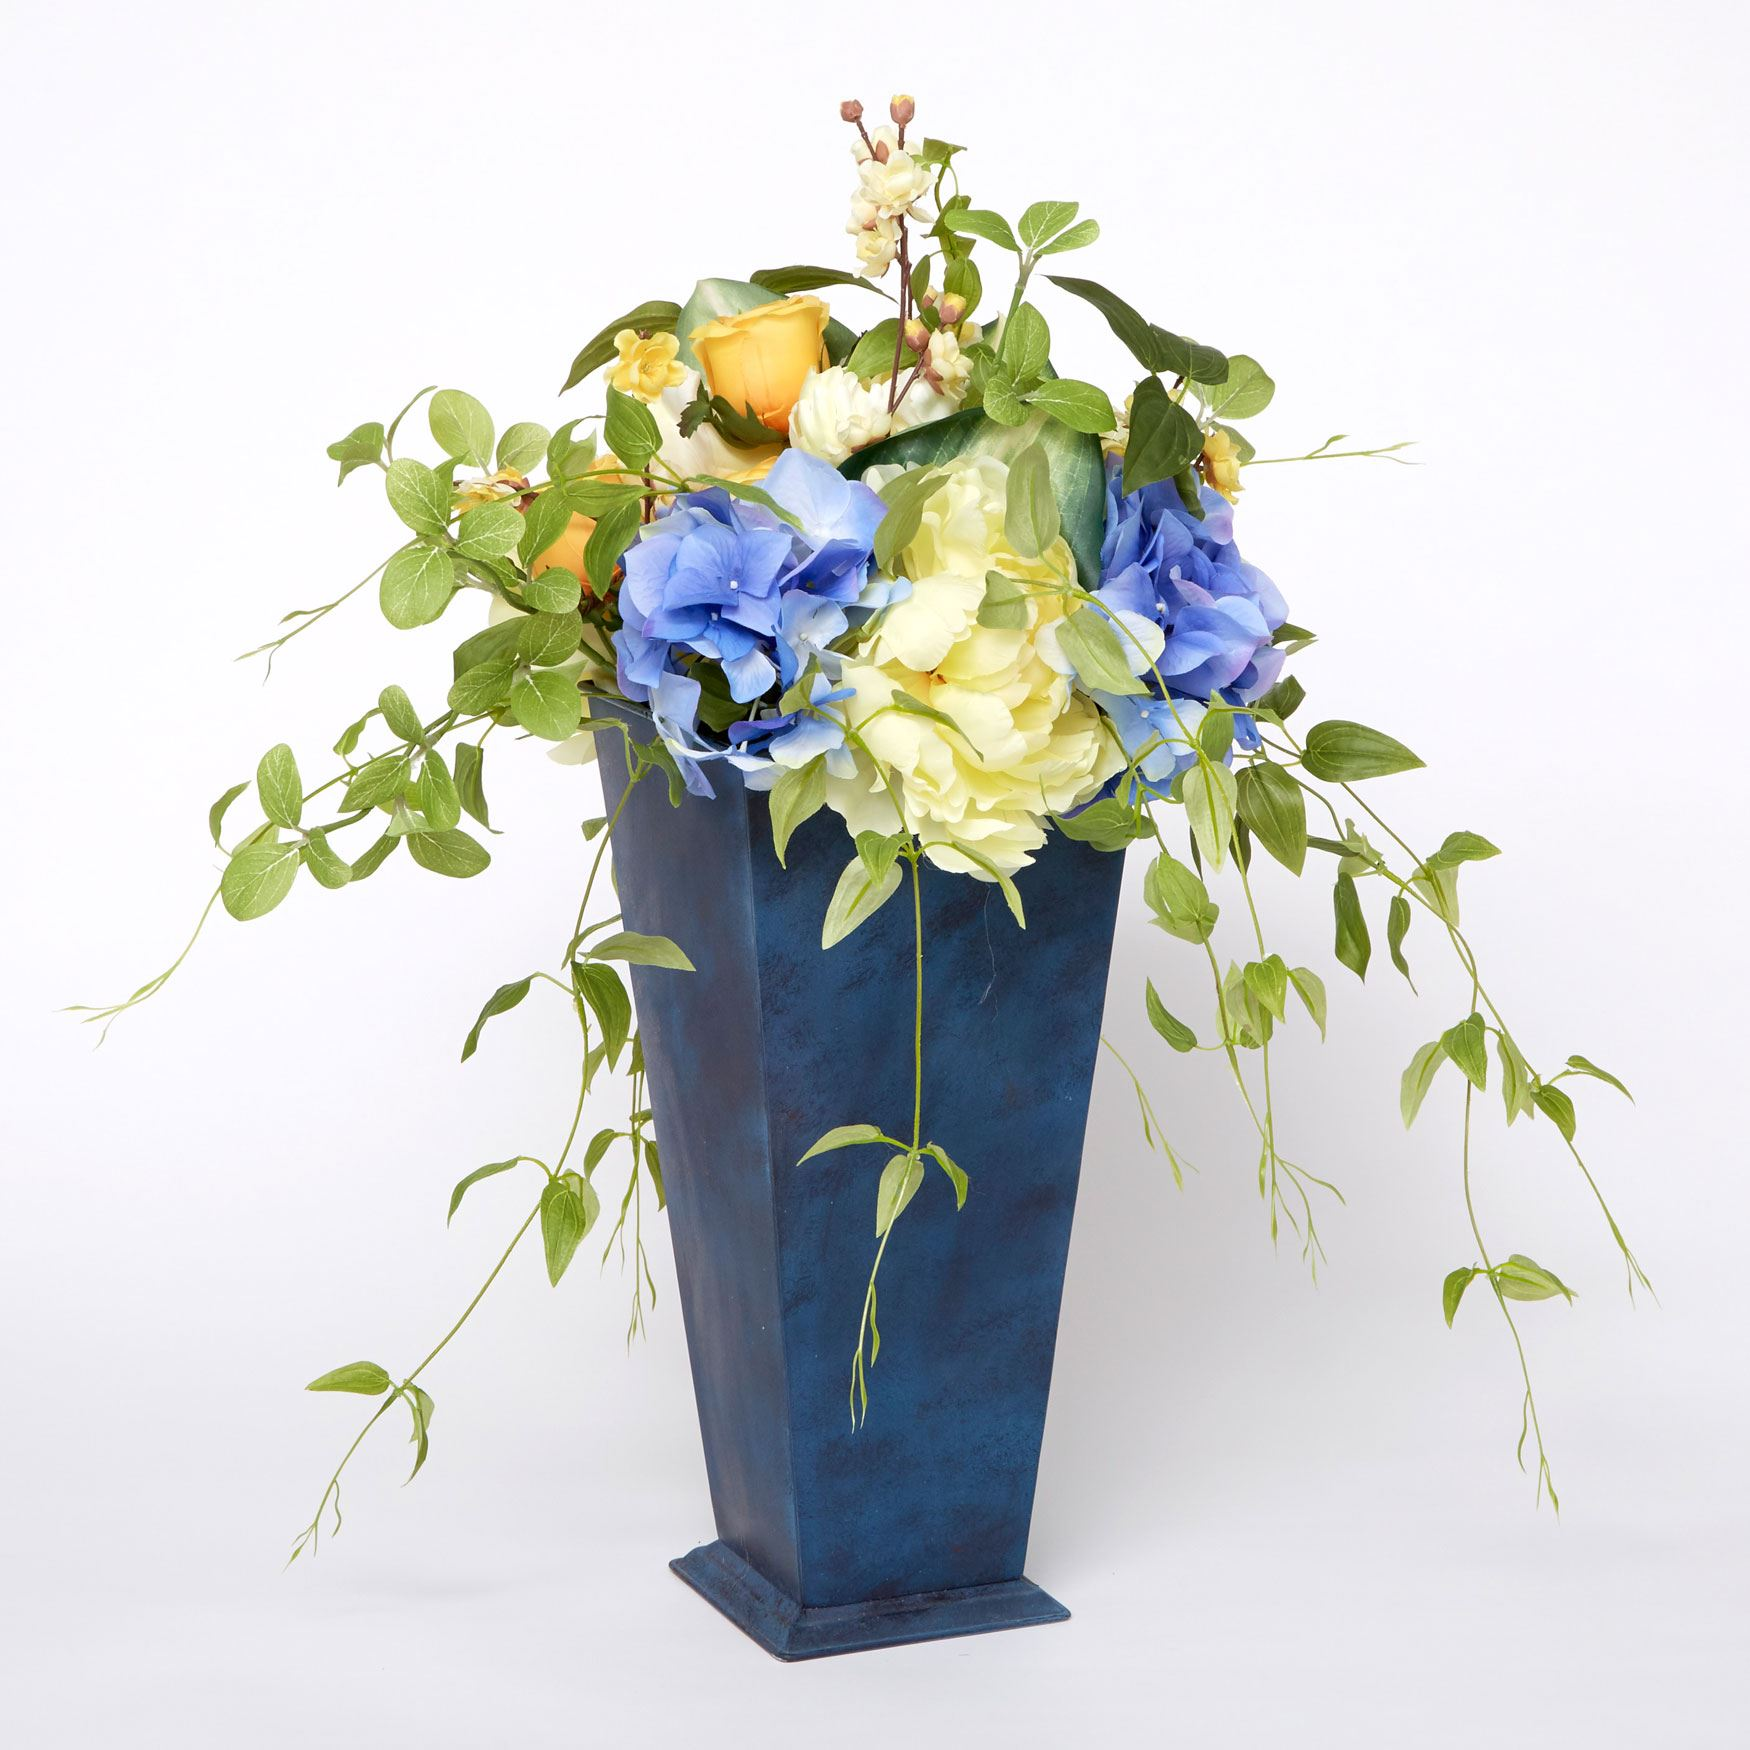 Les Fleur Arrangement with Planter, BLUE YELLOW